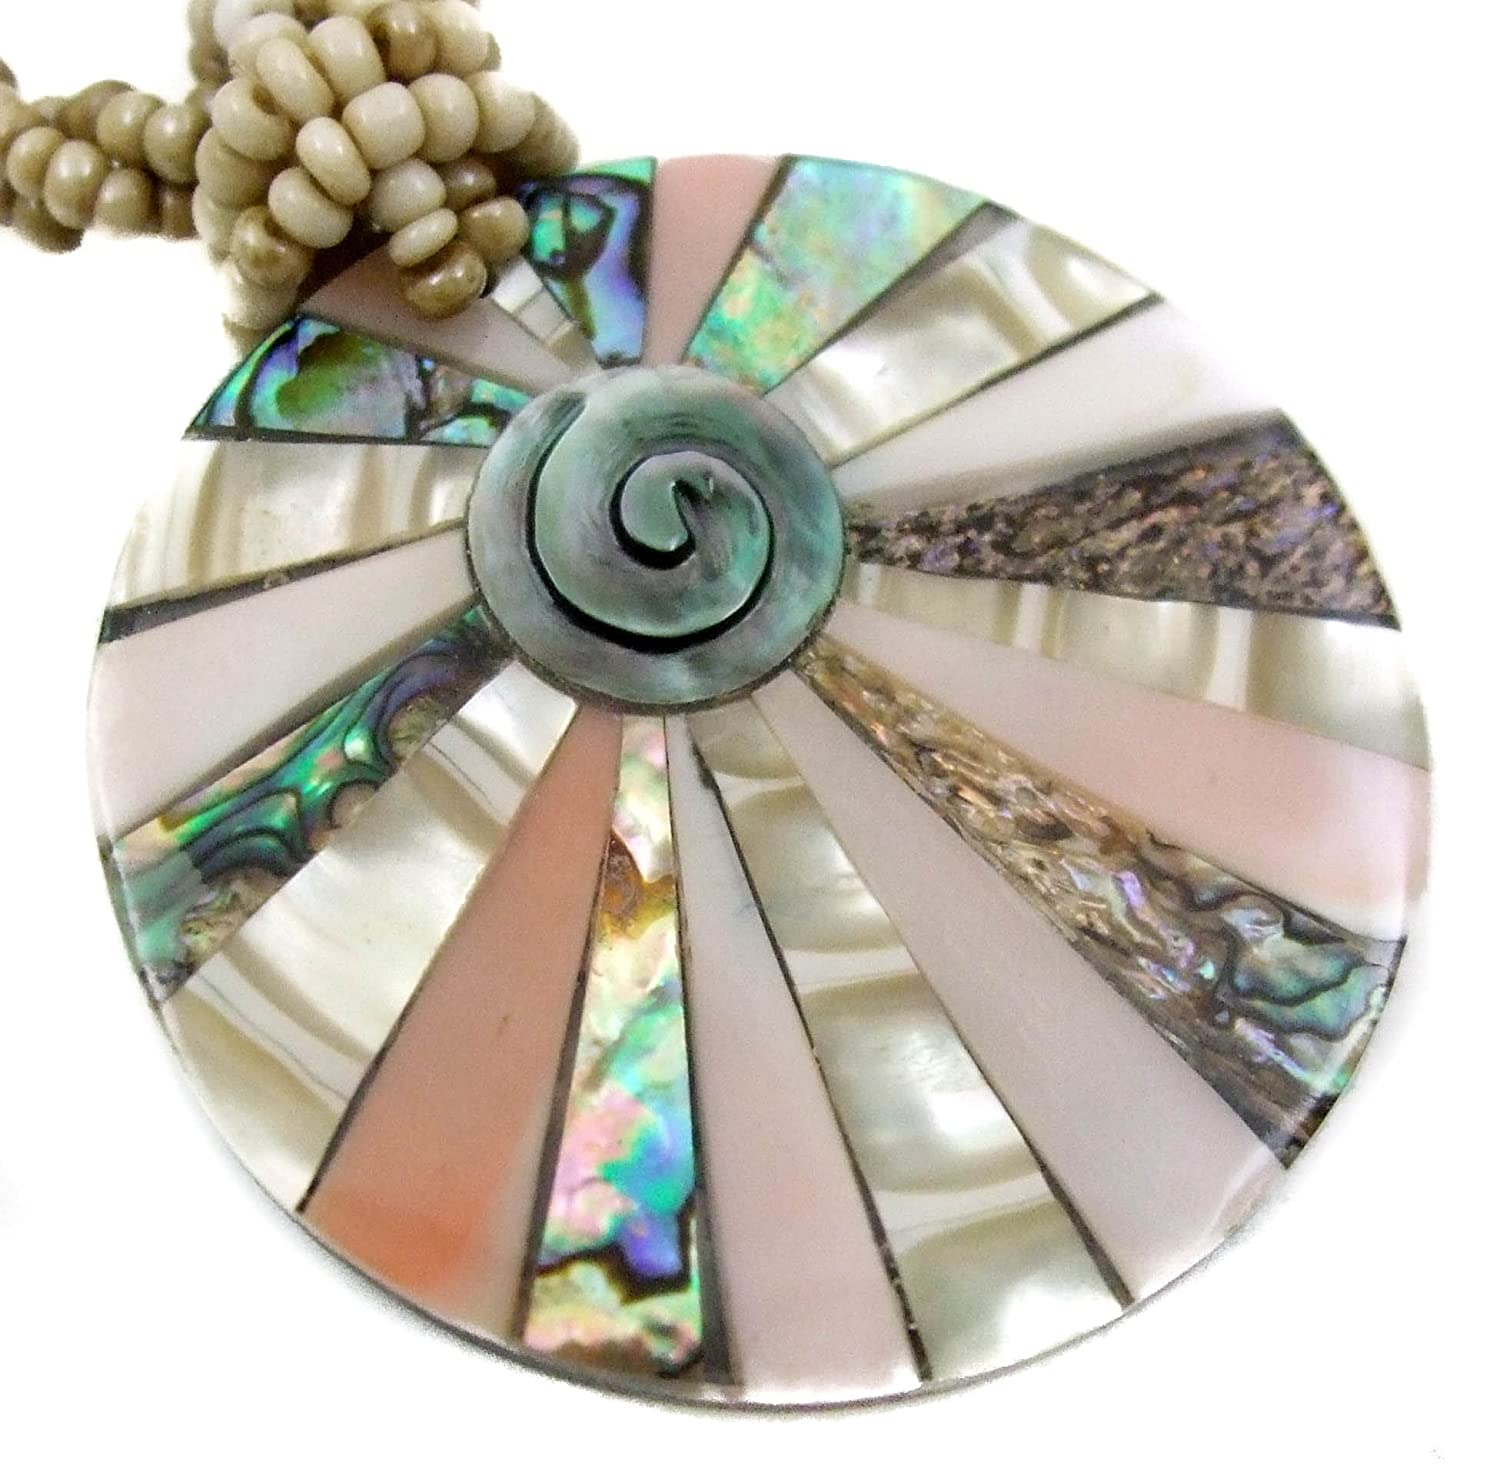 Swimmi Natural Abalone Shell Mother of Pearl Pendant Beads Necklace Handmade Women Jewelry CA310